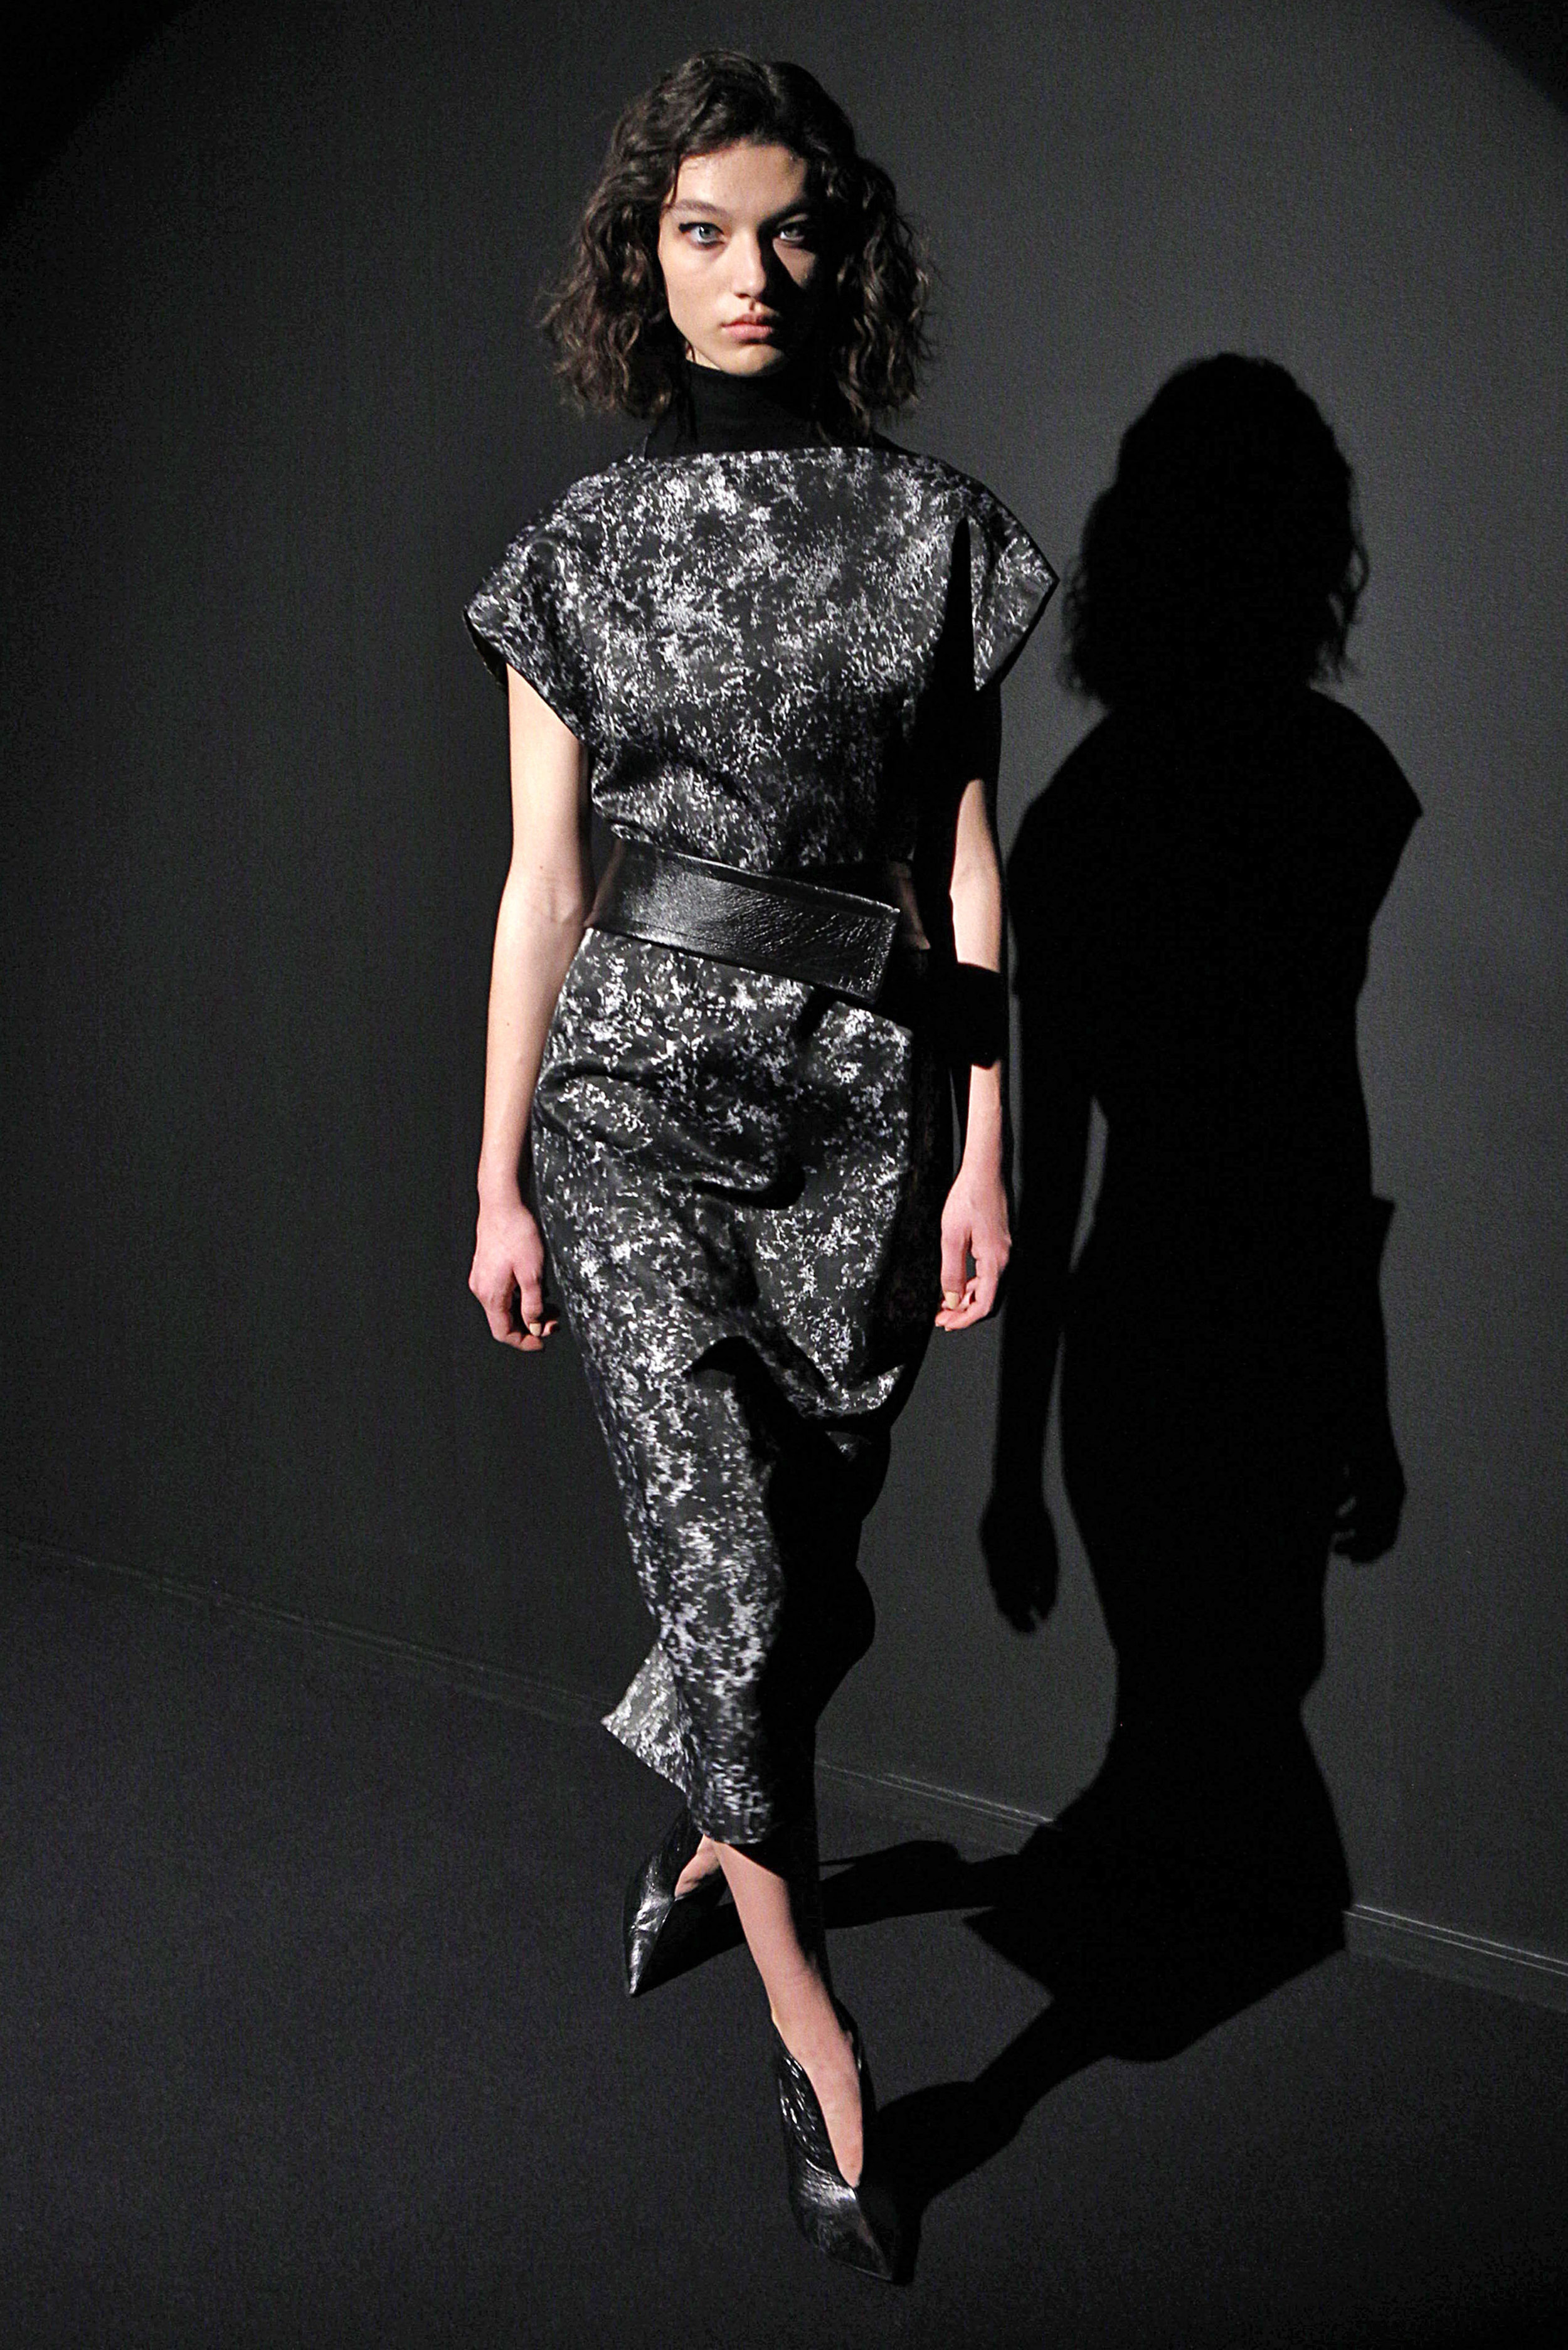 Look 4 Hand painted black/white silk dress with black sleeveless turtleneck and black leather belt.